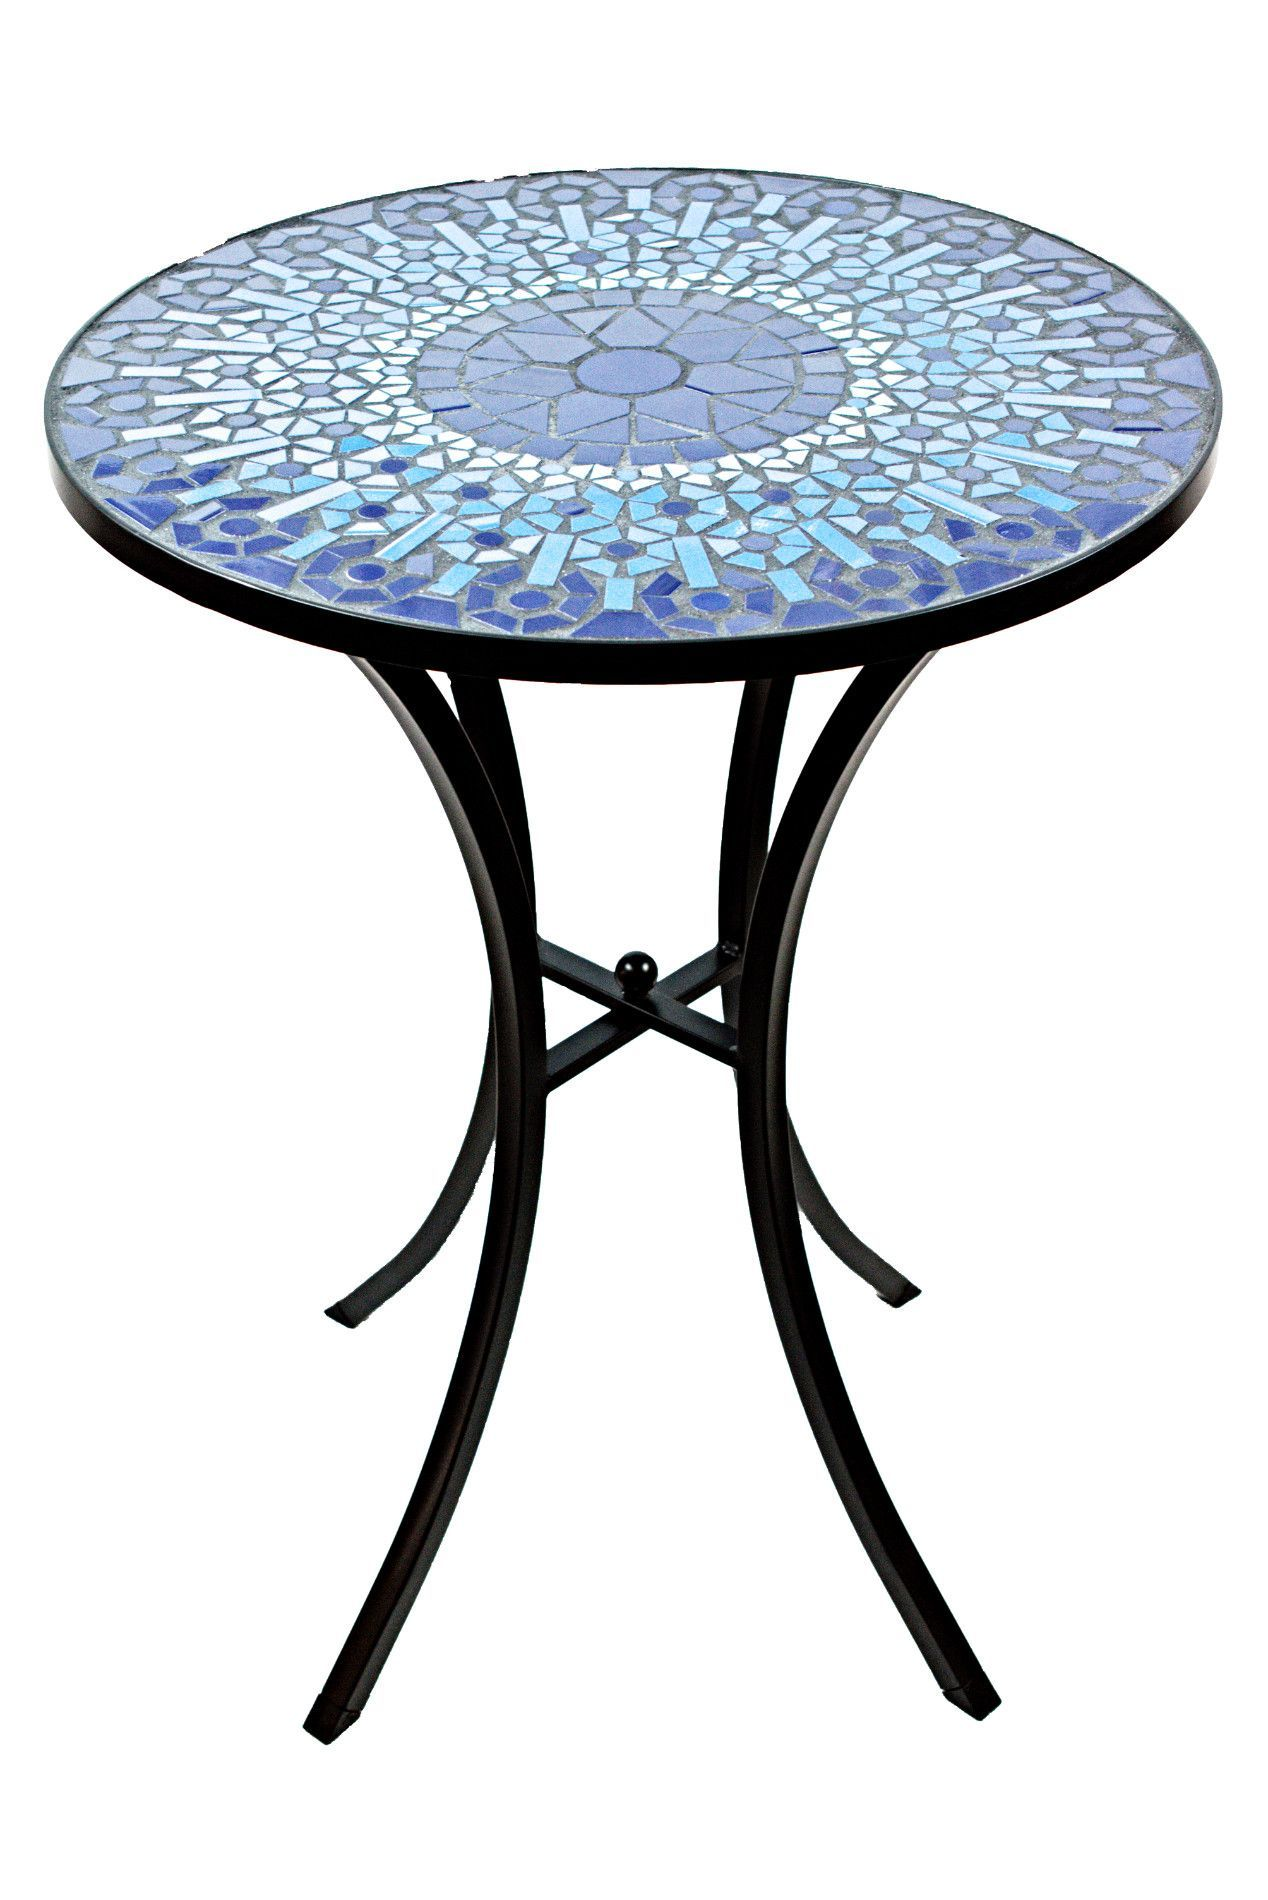 mosaic accent table mosaico art furniture tile outdoor this ceramic adds elegance any indoor decor the intricate pattern handcrafted for impeccable finish and best tablecloths